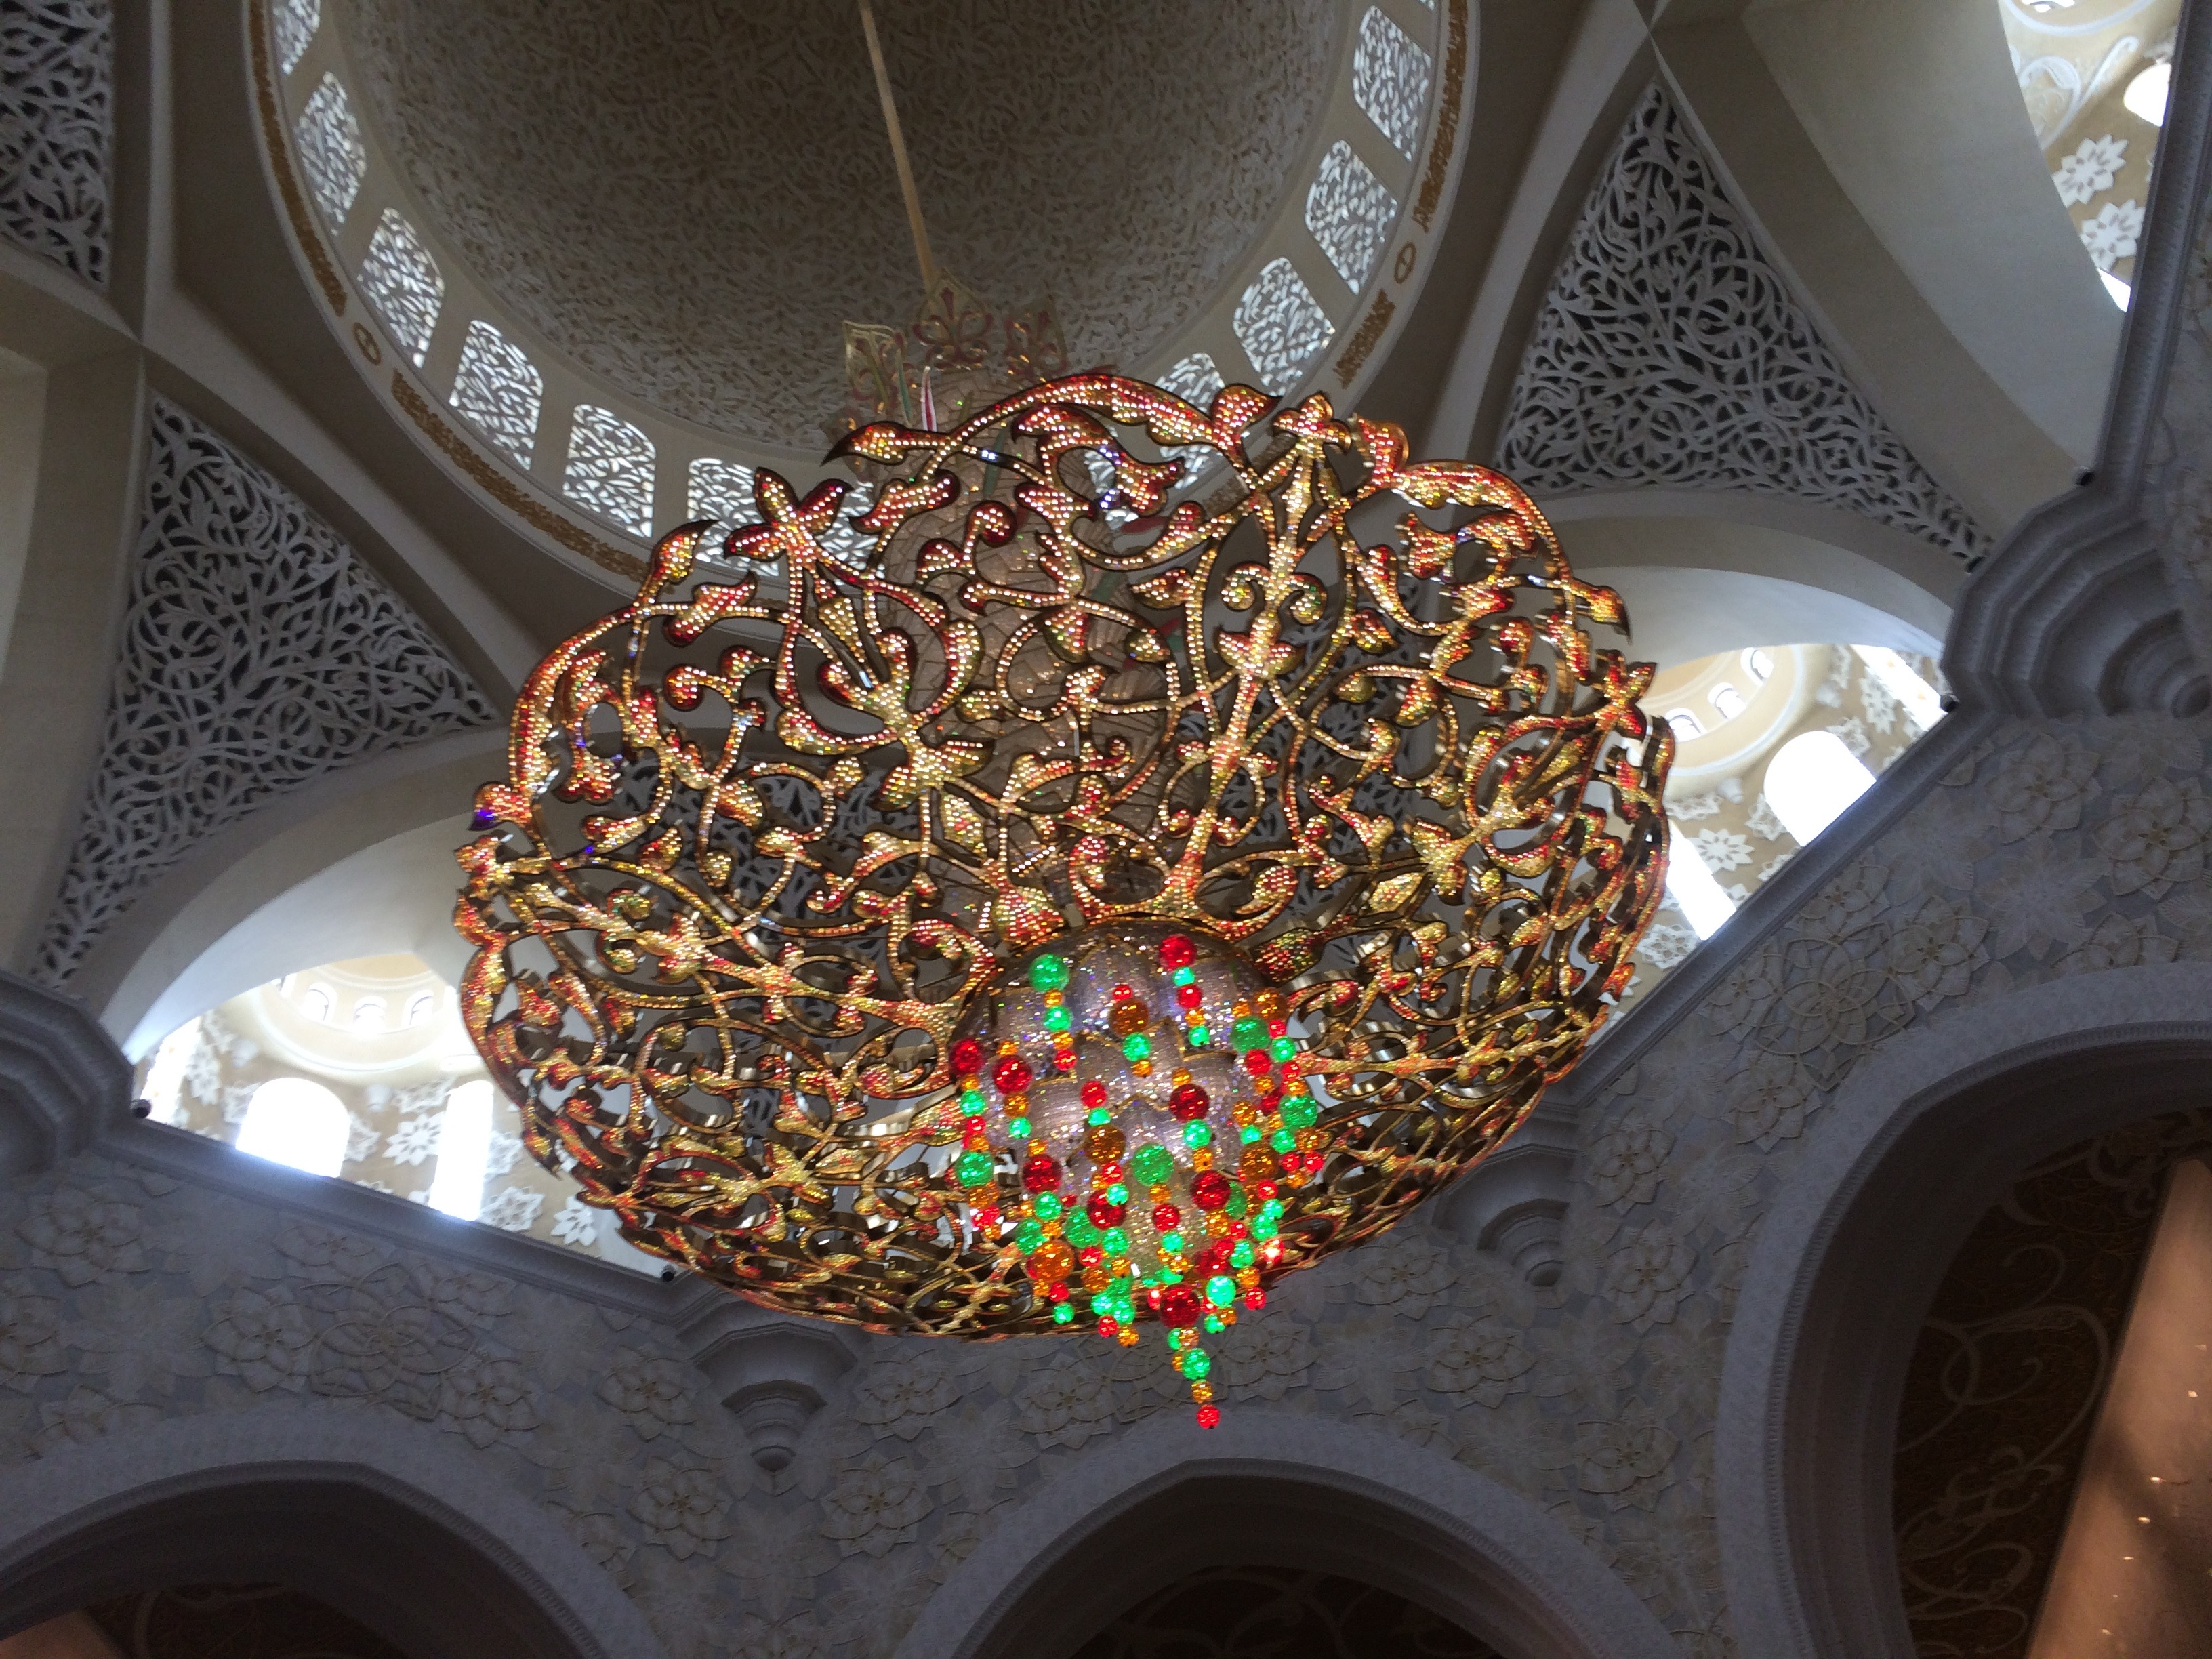 Gold ceiling and chandelier in the Abu Dhabi Mosque